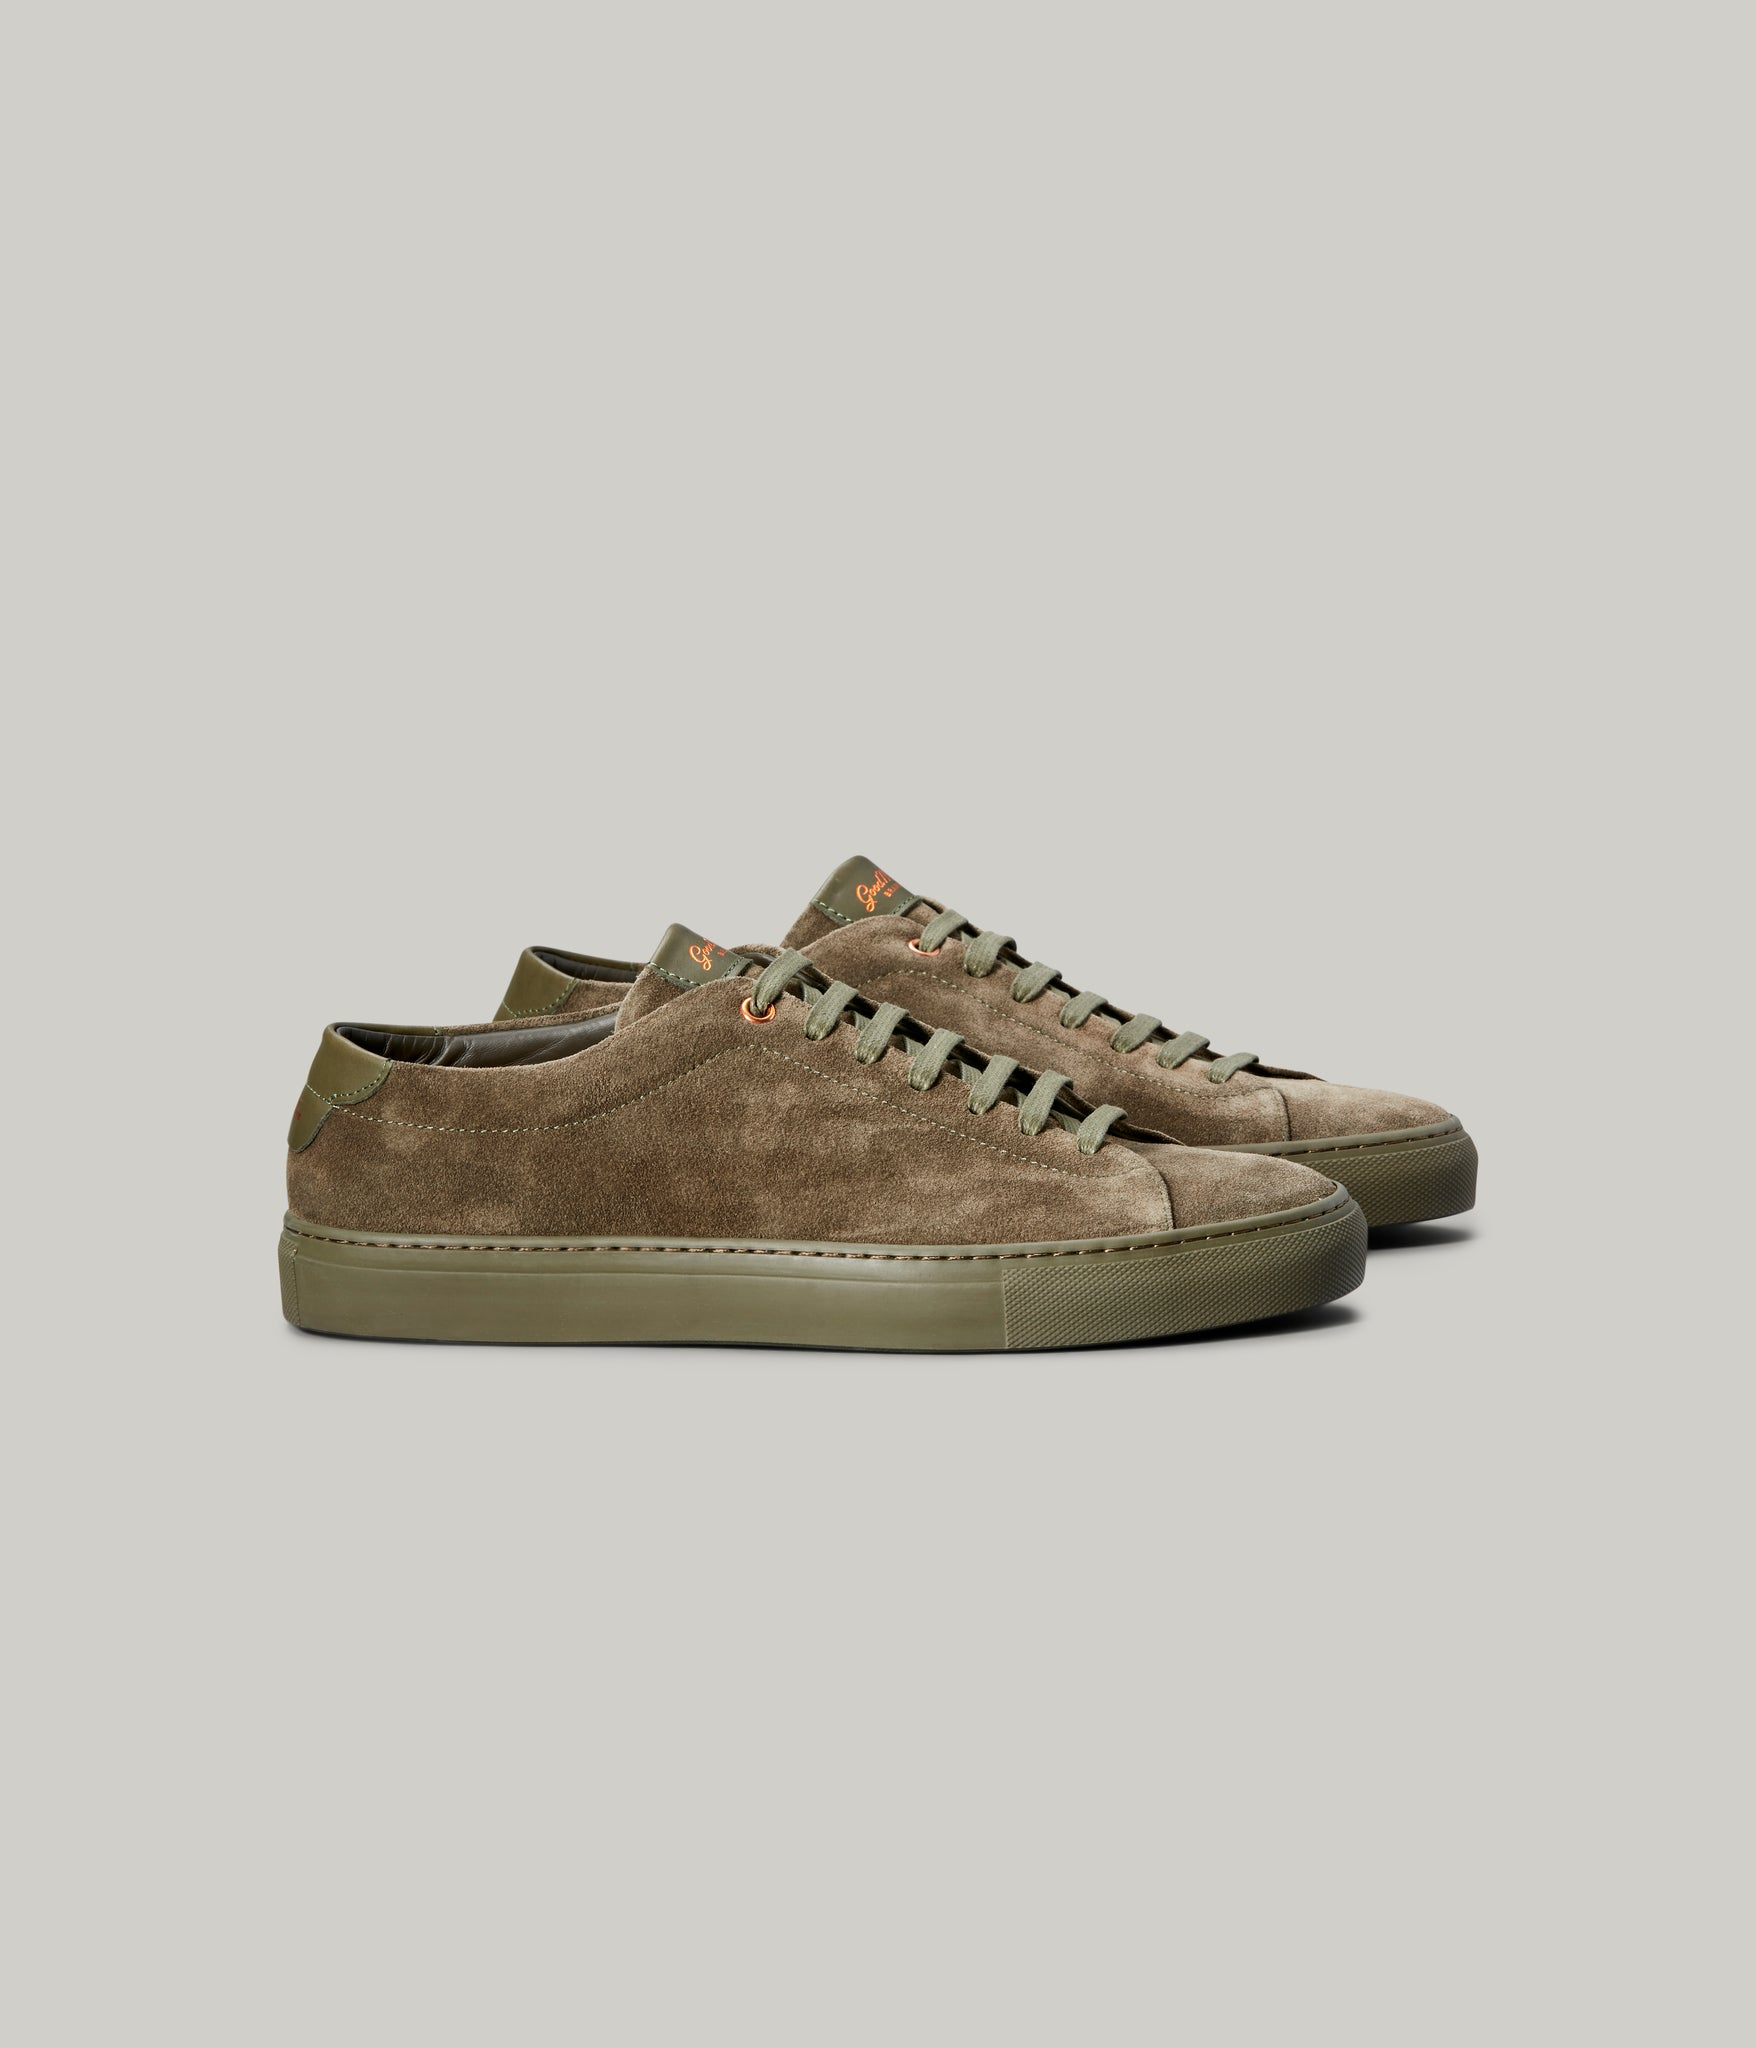 Edge Mono Lo-Top Sneaker in Suede - Olive